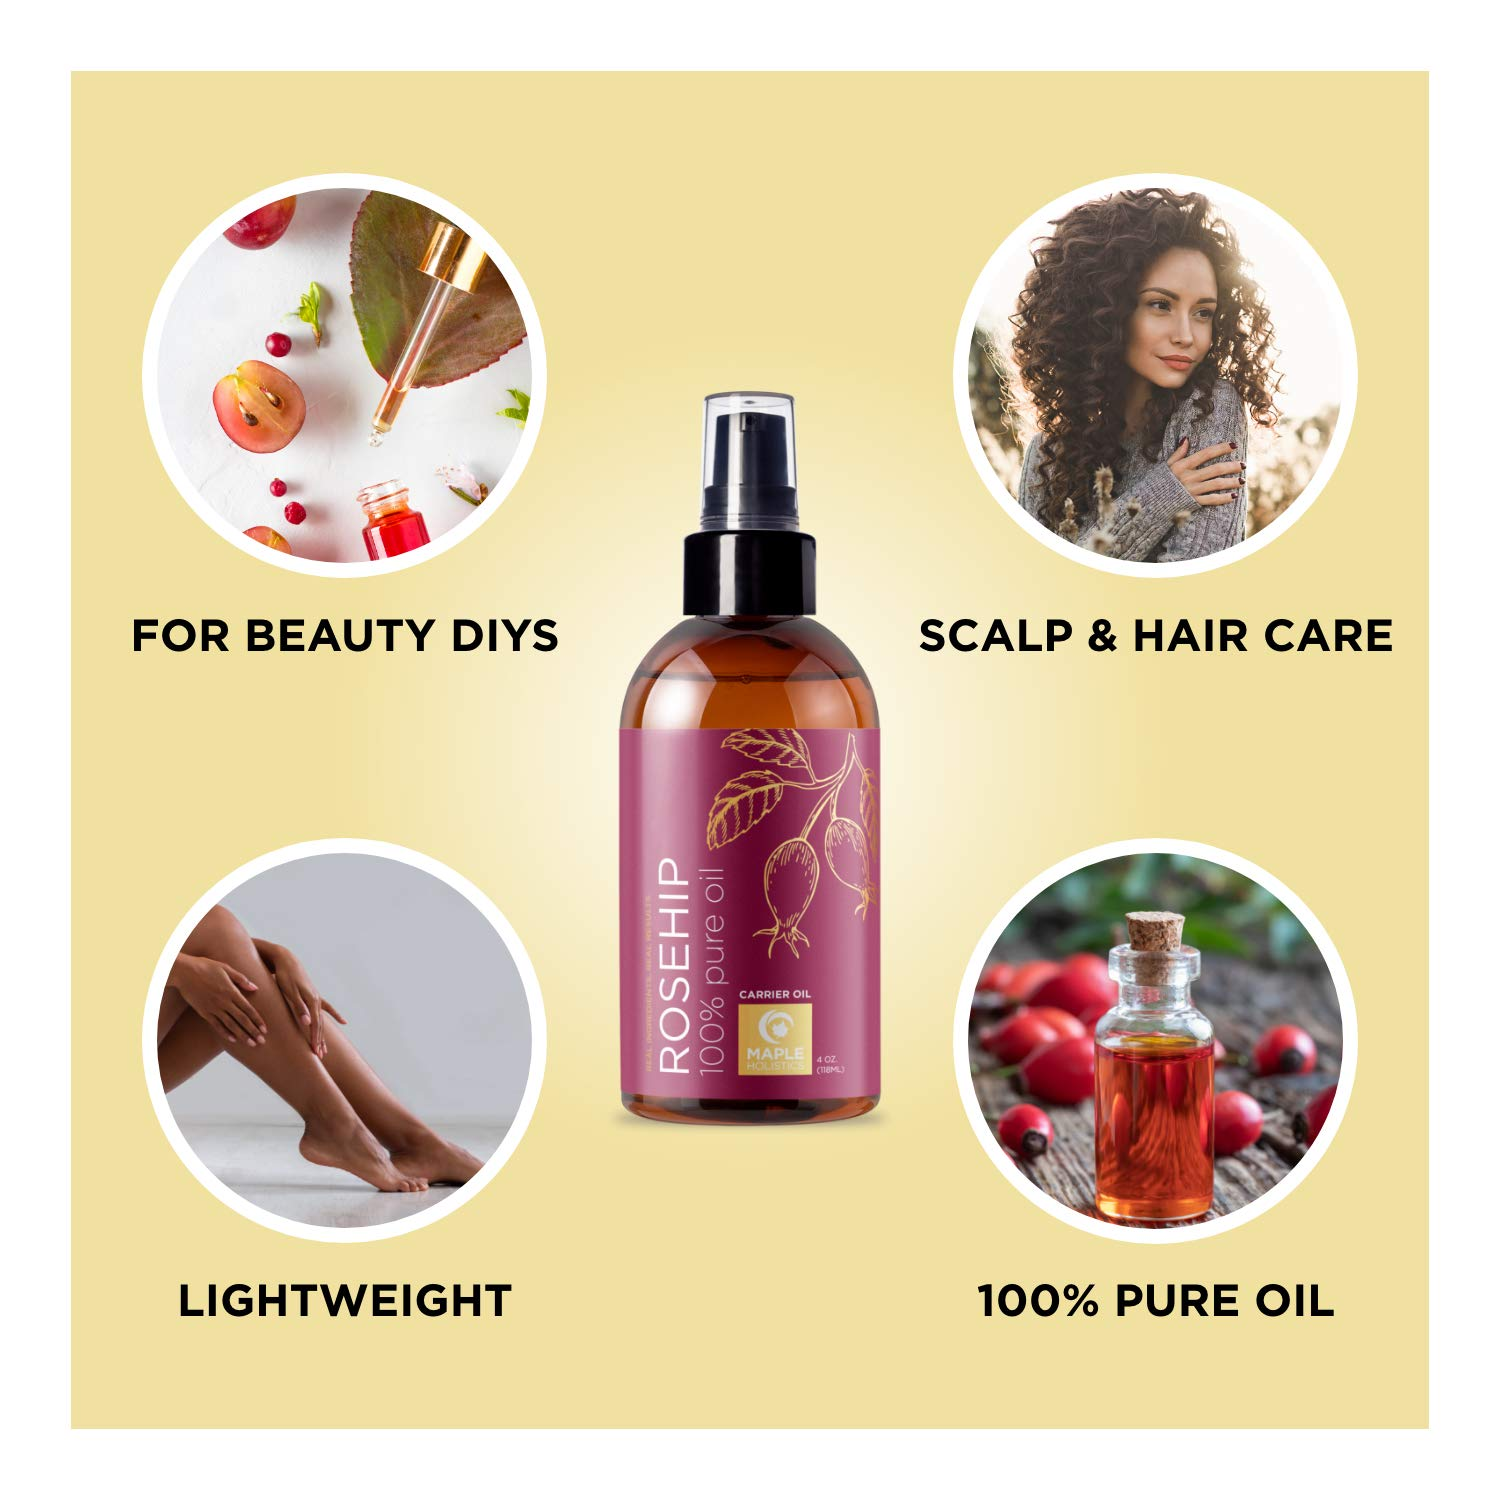 Pure Rosehip Oil for Face Care - Nourishing Rosehip Seed Oil Face Moisturizer for Dry Skin and Natural Hair Oil for Dry Hair - Anti Aging Face Serum with Pure Rose Hips and Vitamin E Oil for Skin